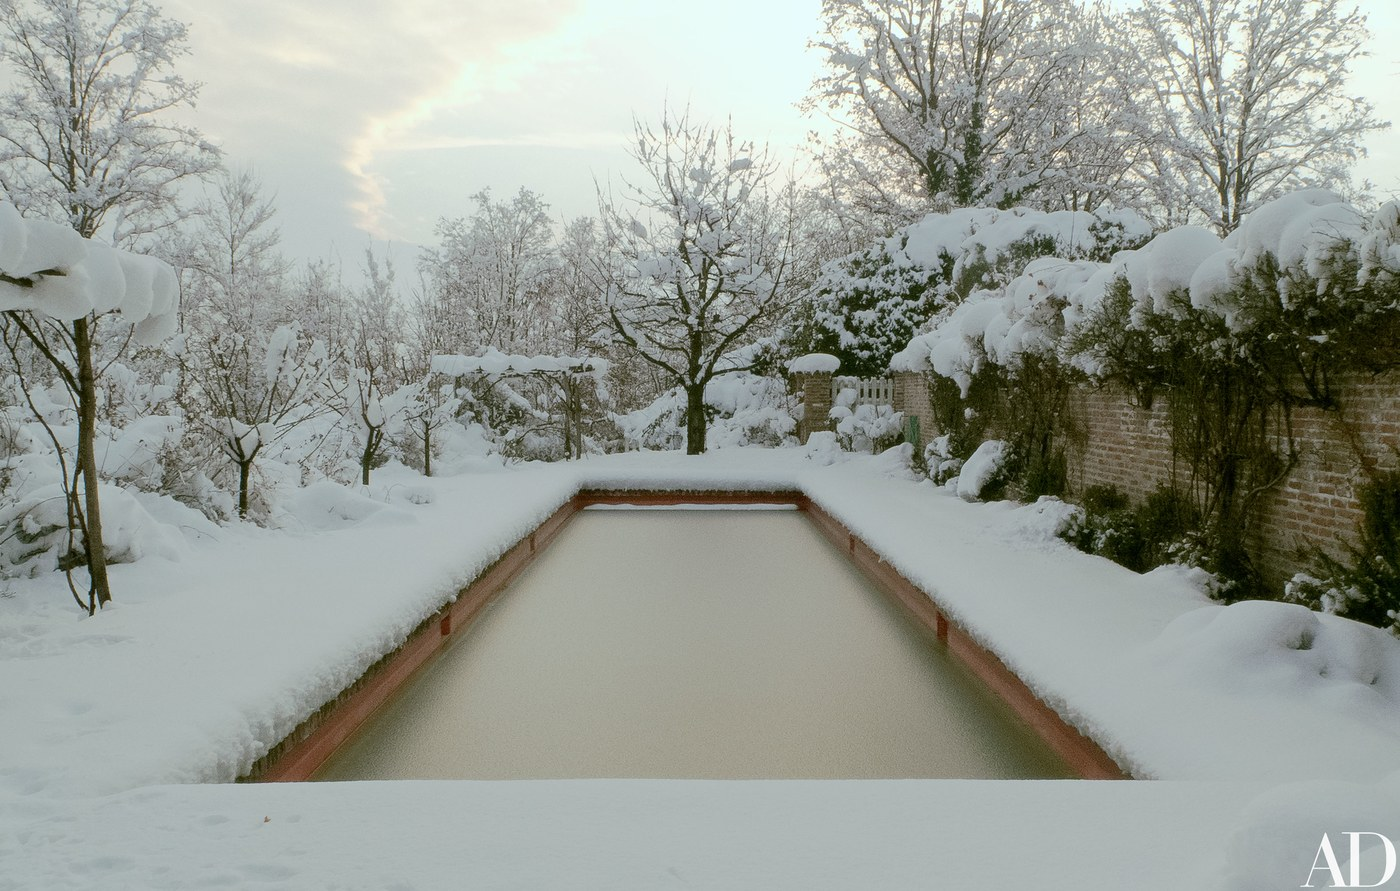 Snow covered natural pool on Oberto Gili's  farm in Italy